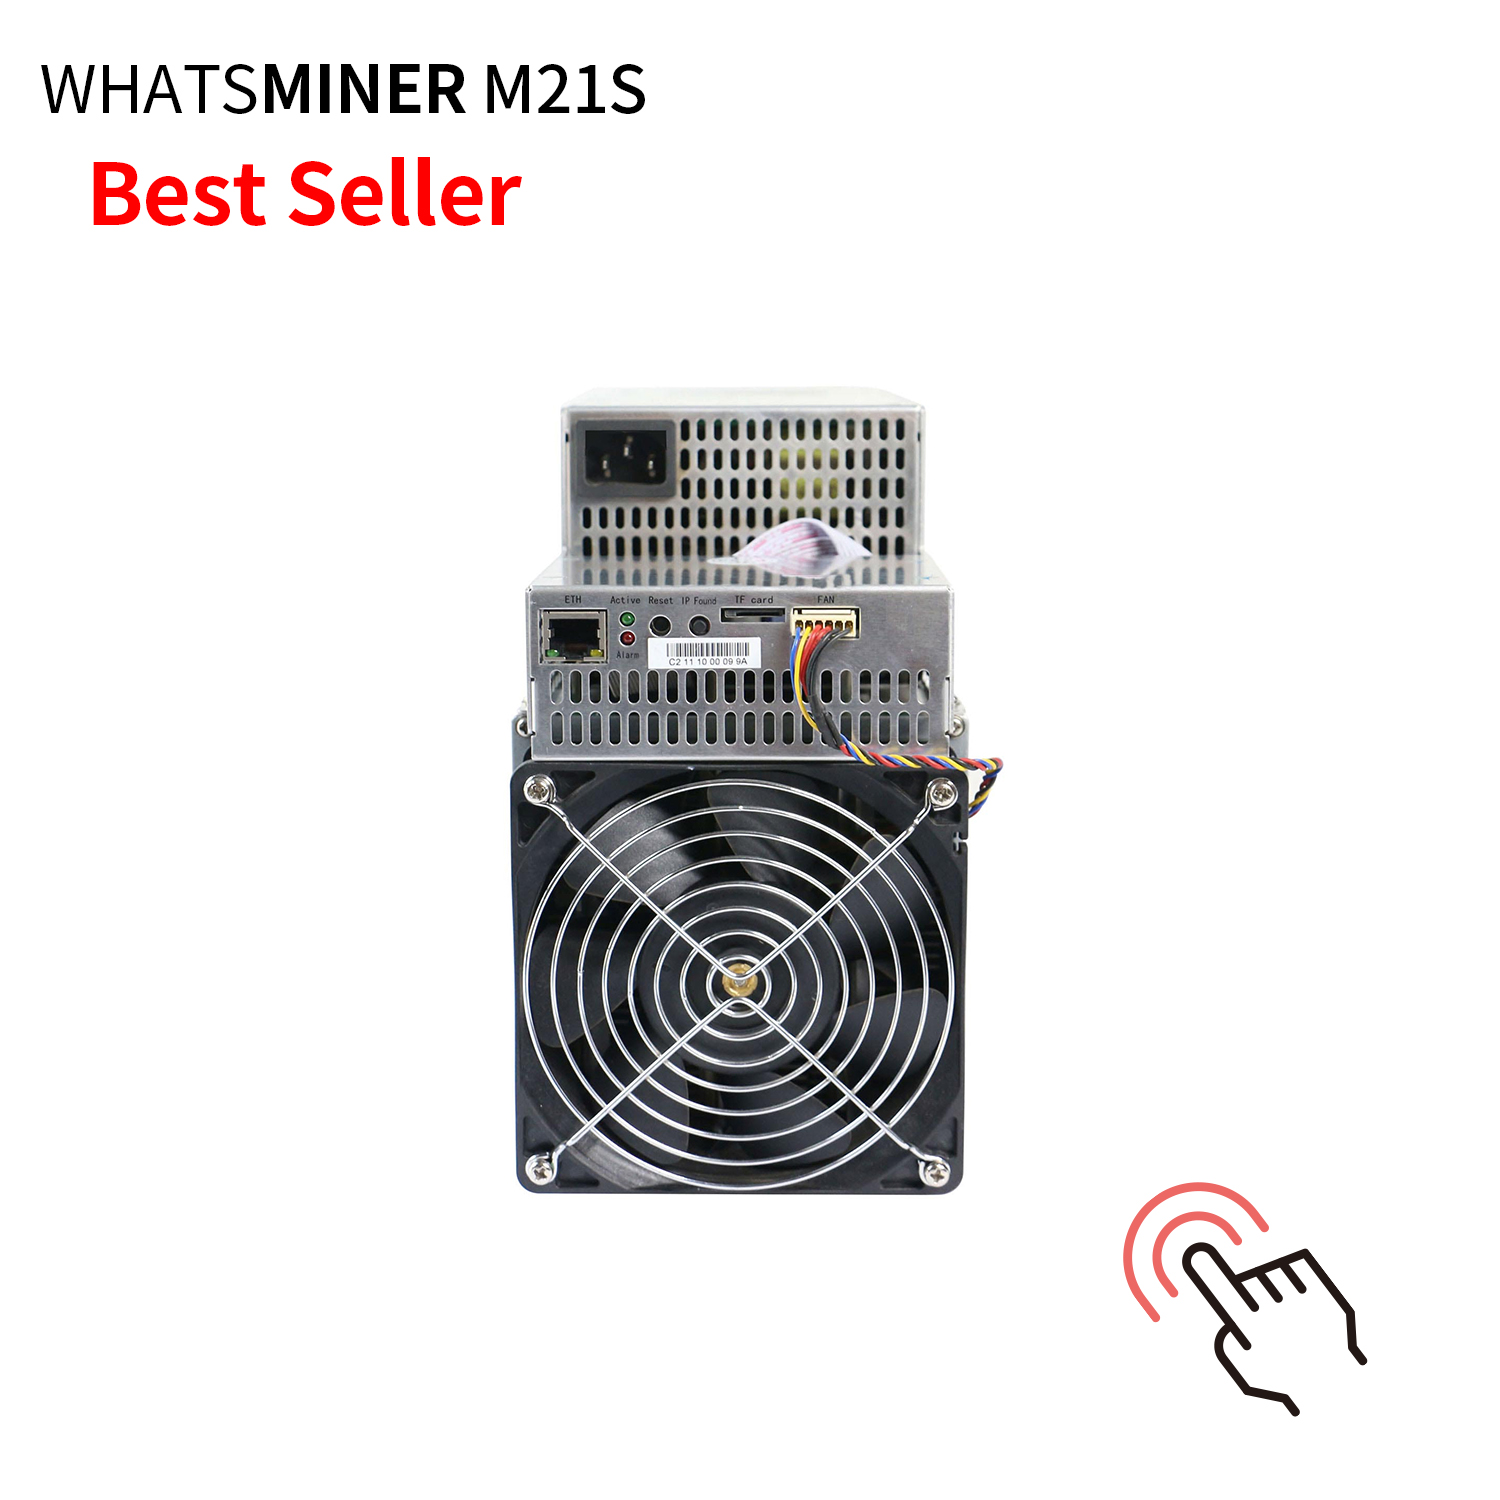 High profit Whatsminer M21S 56Th/s 3360W SHA256  ASIC Bitcoin Miner with power for pool miners